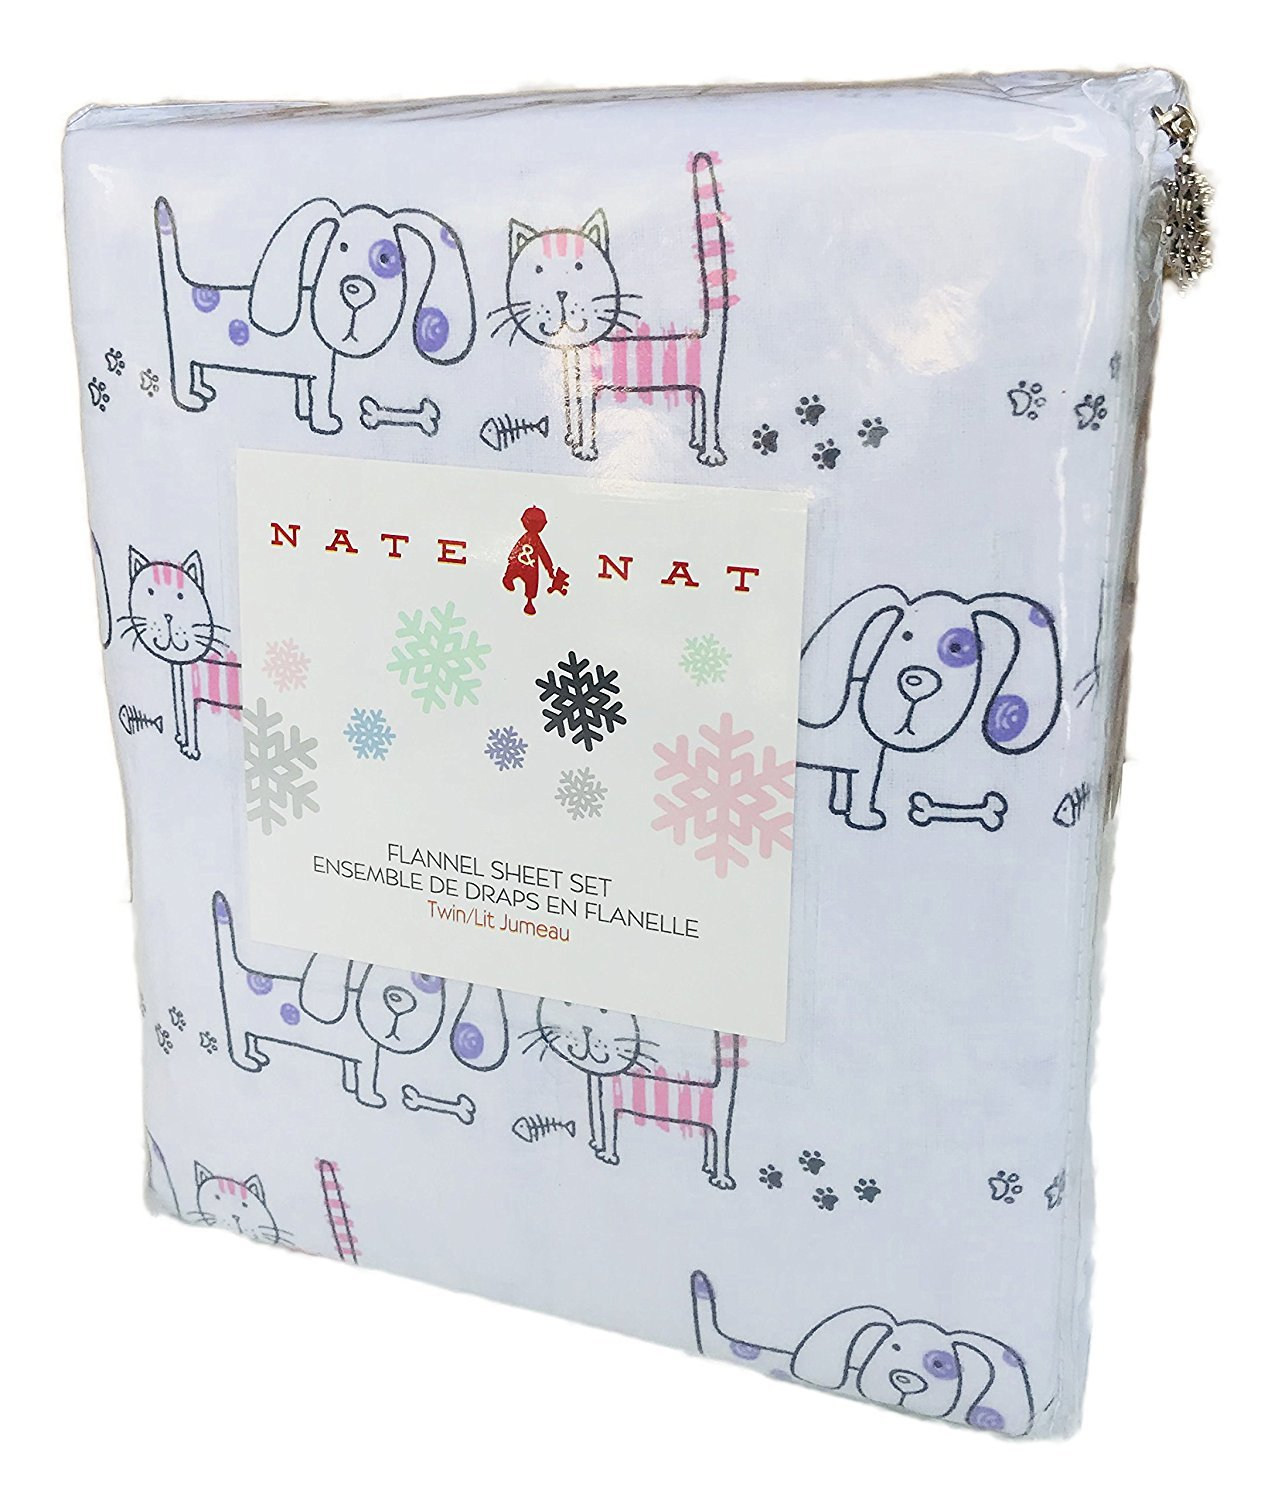 NATE & NAT Kids Cats & Dogs Flannel Sheet Set - FULL SIZE (all cotton flannel)